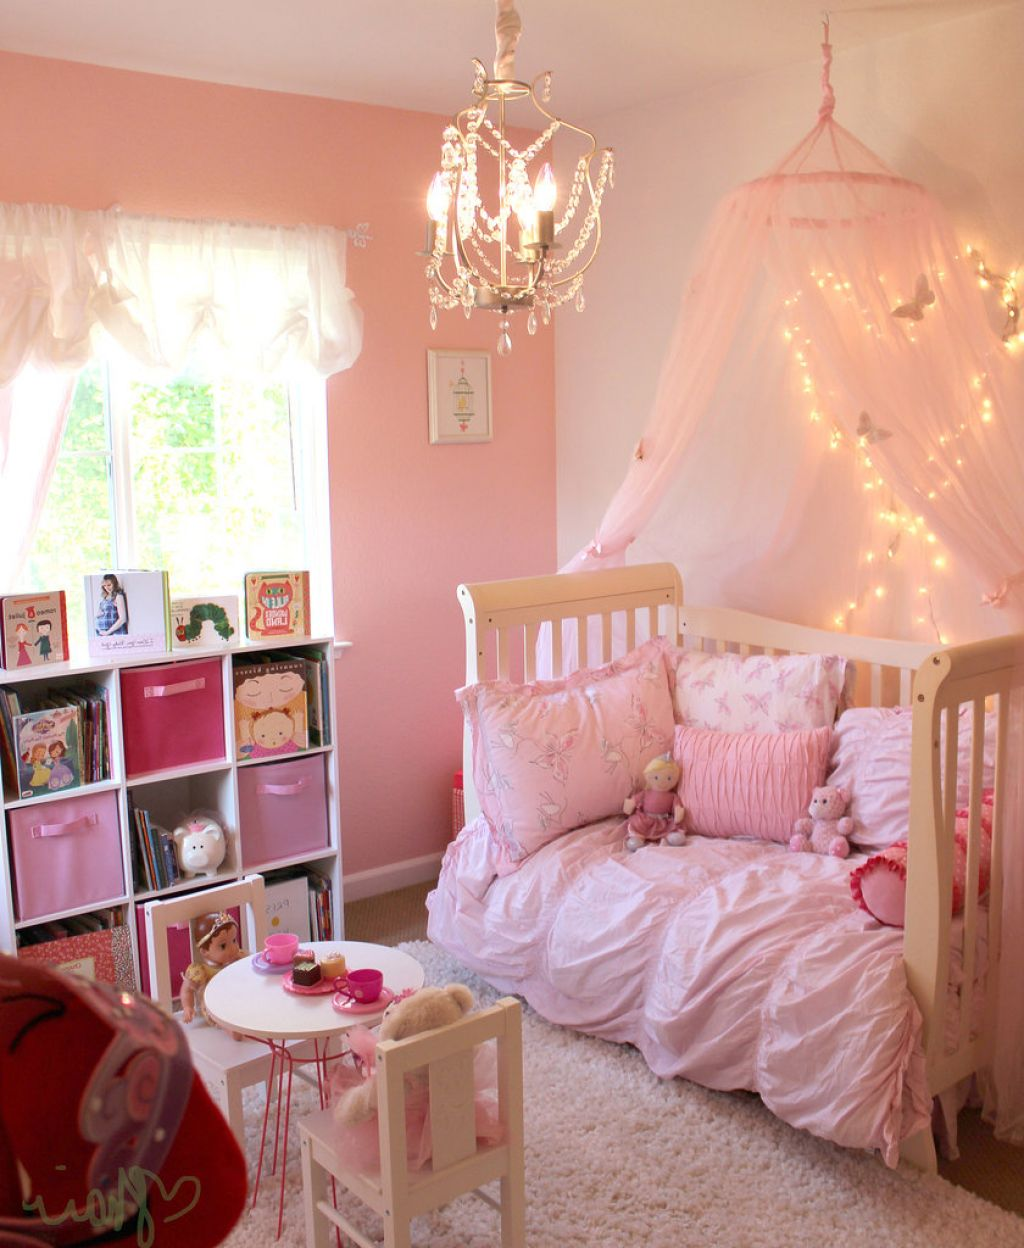 Captivating 35 Dreamy Bedroom Designs For Your Little Princess Homesthetics